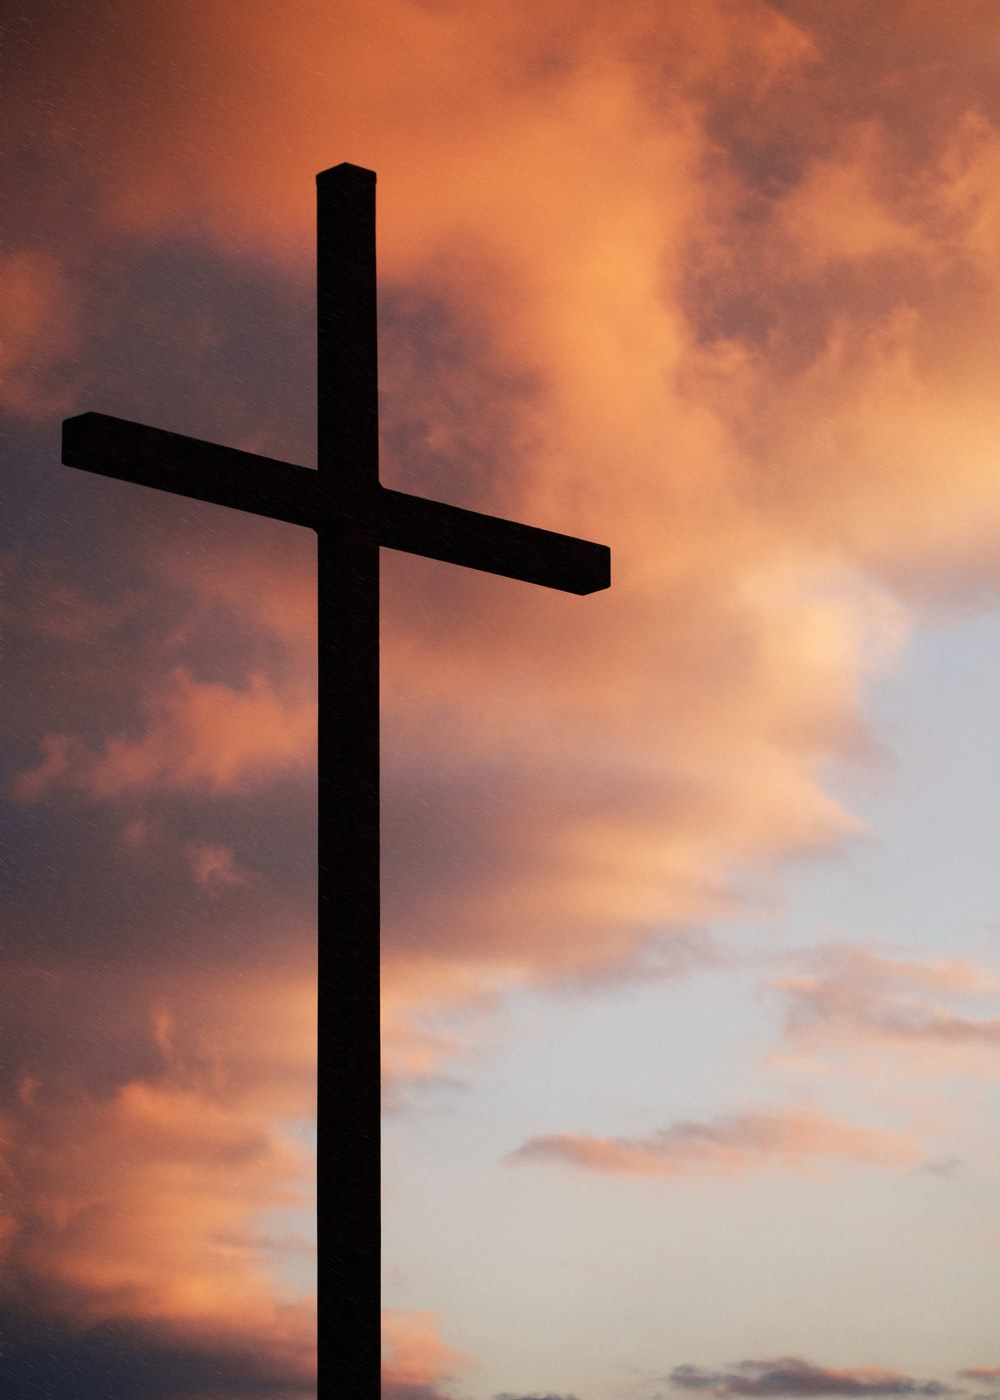 A cross against the colored sunset sky